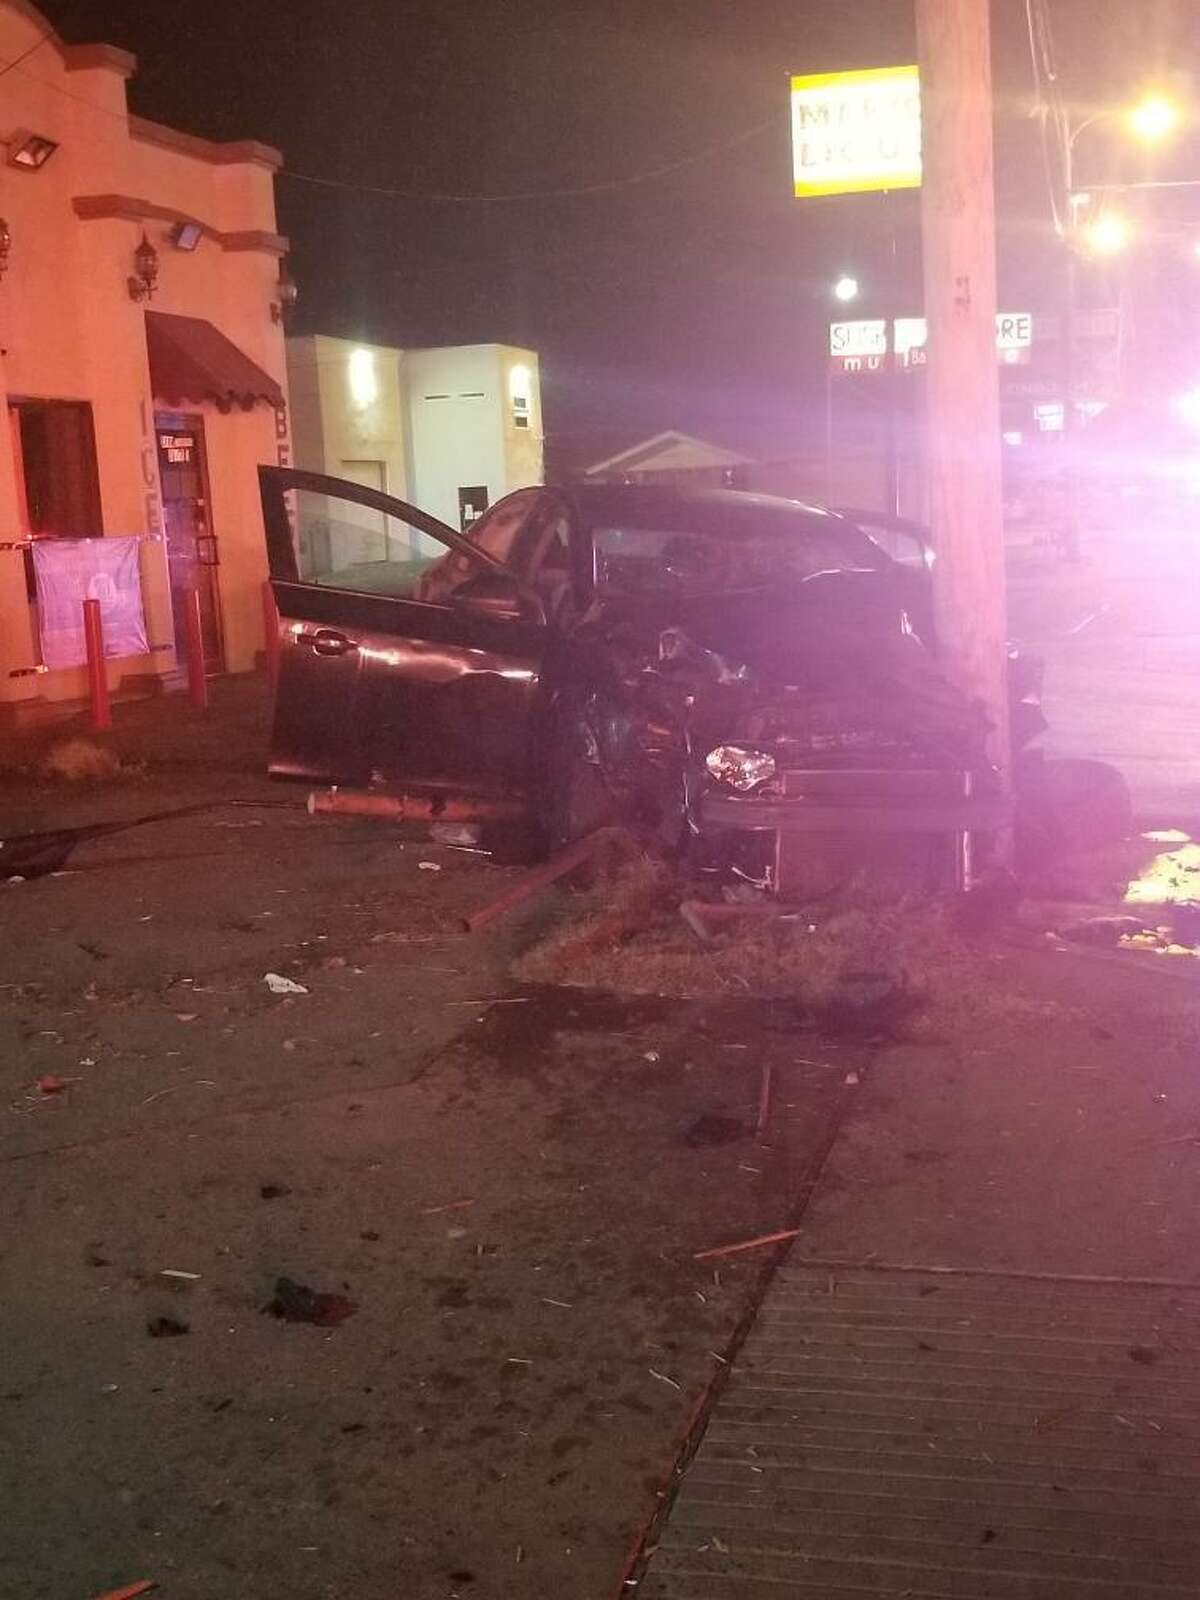 Two people were injured in this a reported early Thursday near the intersection of West Saunders Street and Barcelona Avenue.